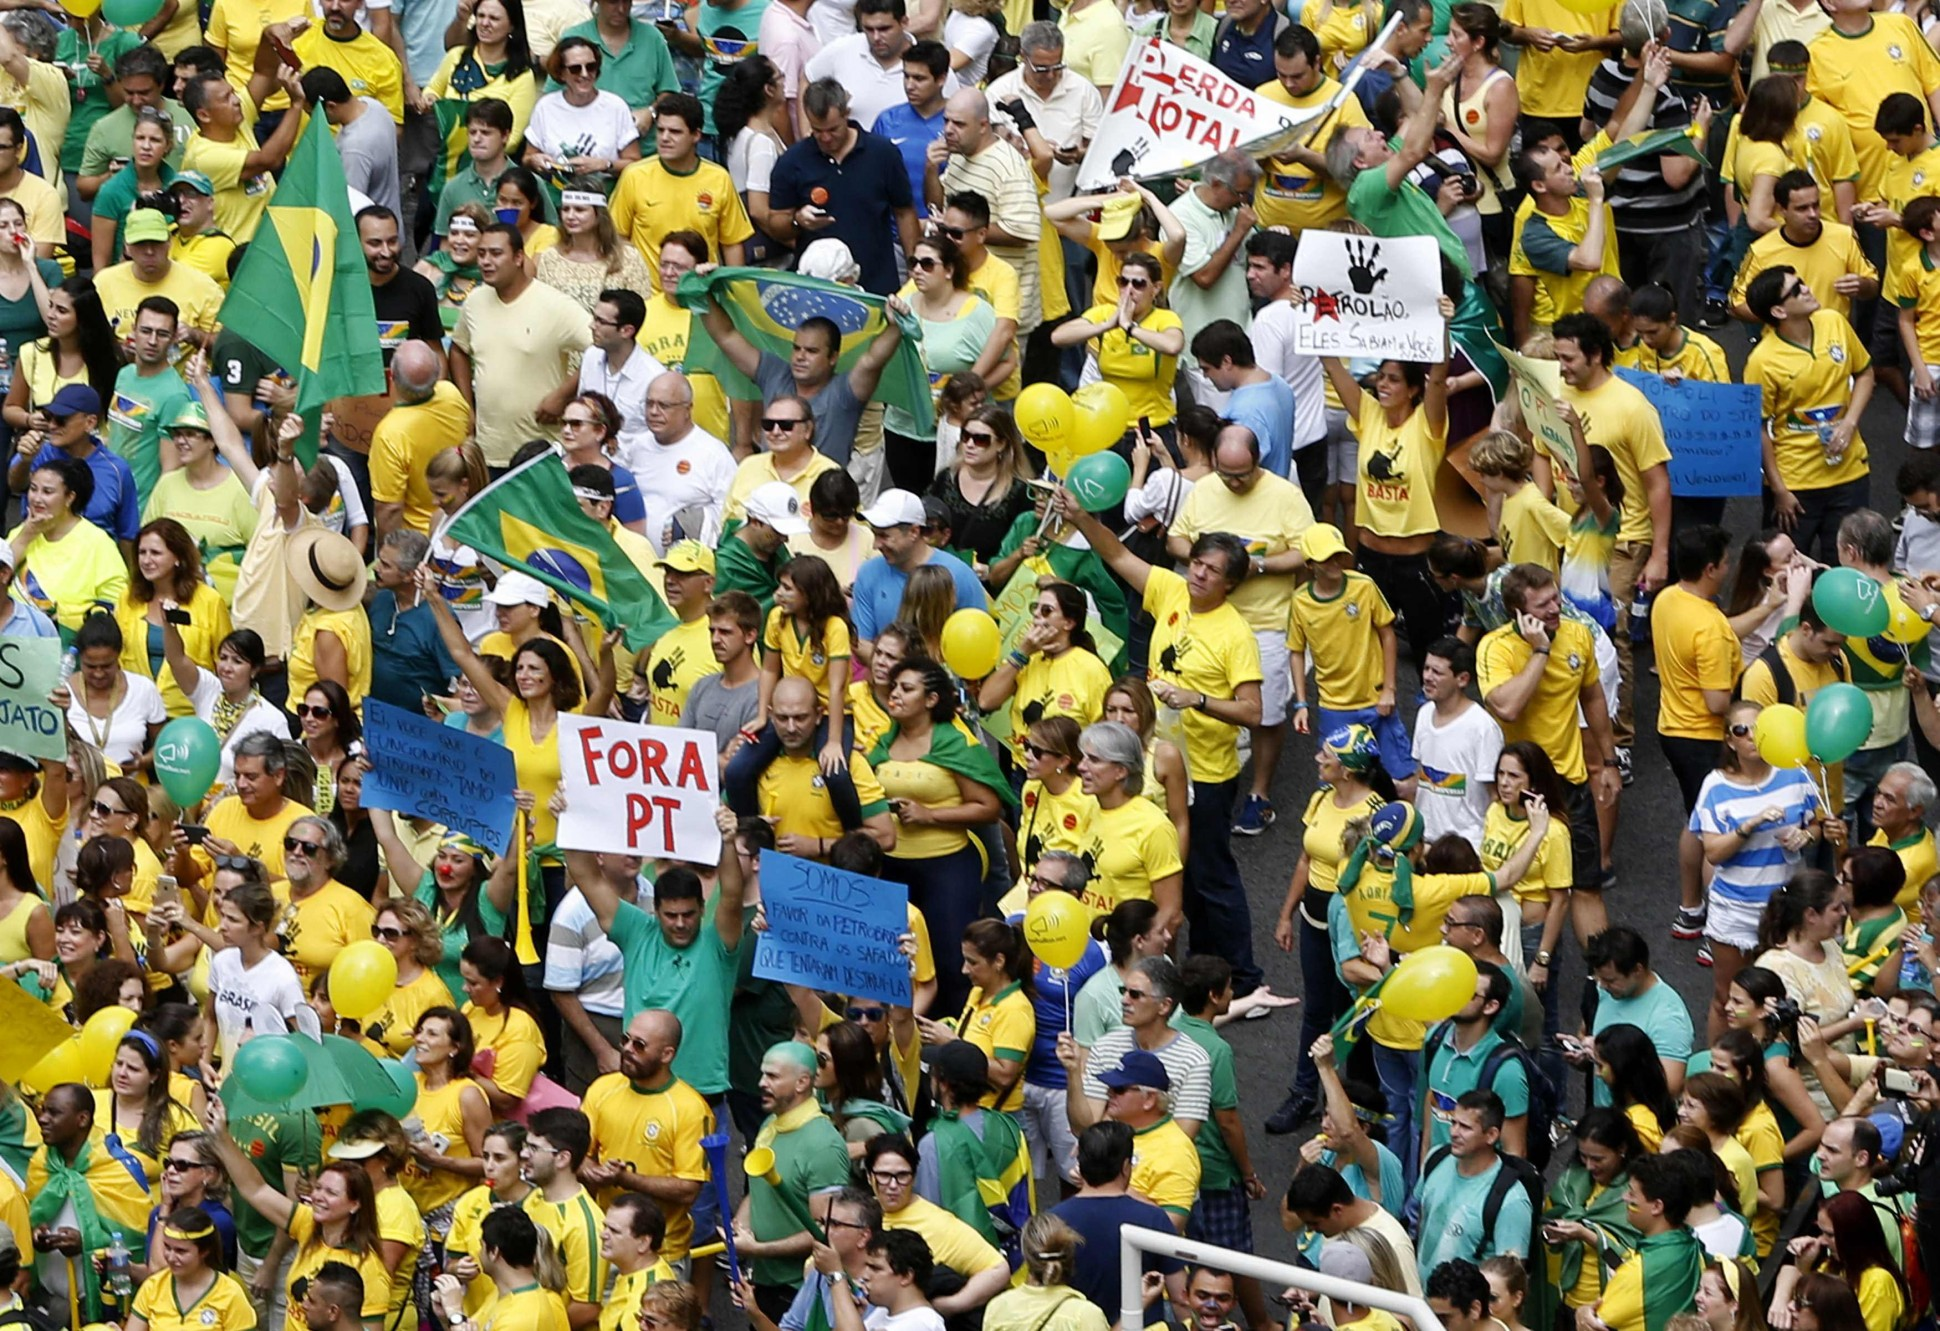 SaoPaulo_2015_protets-1940x1331